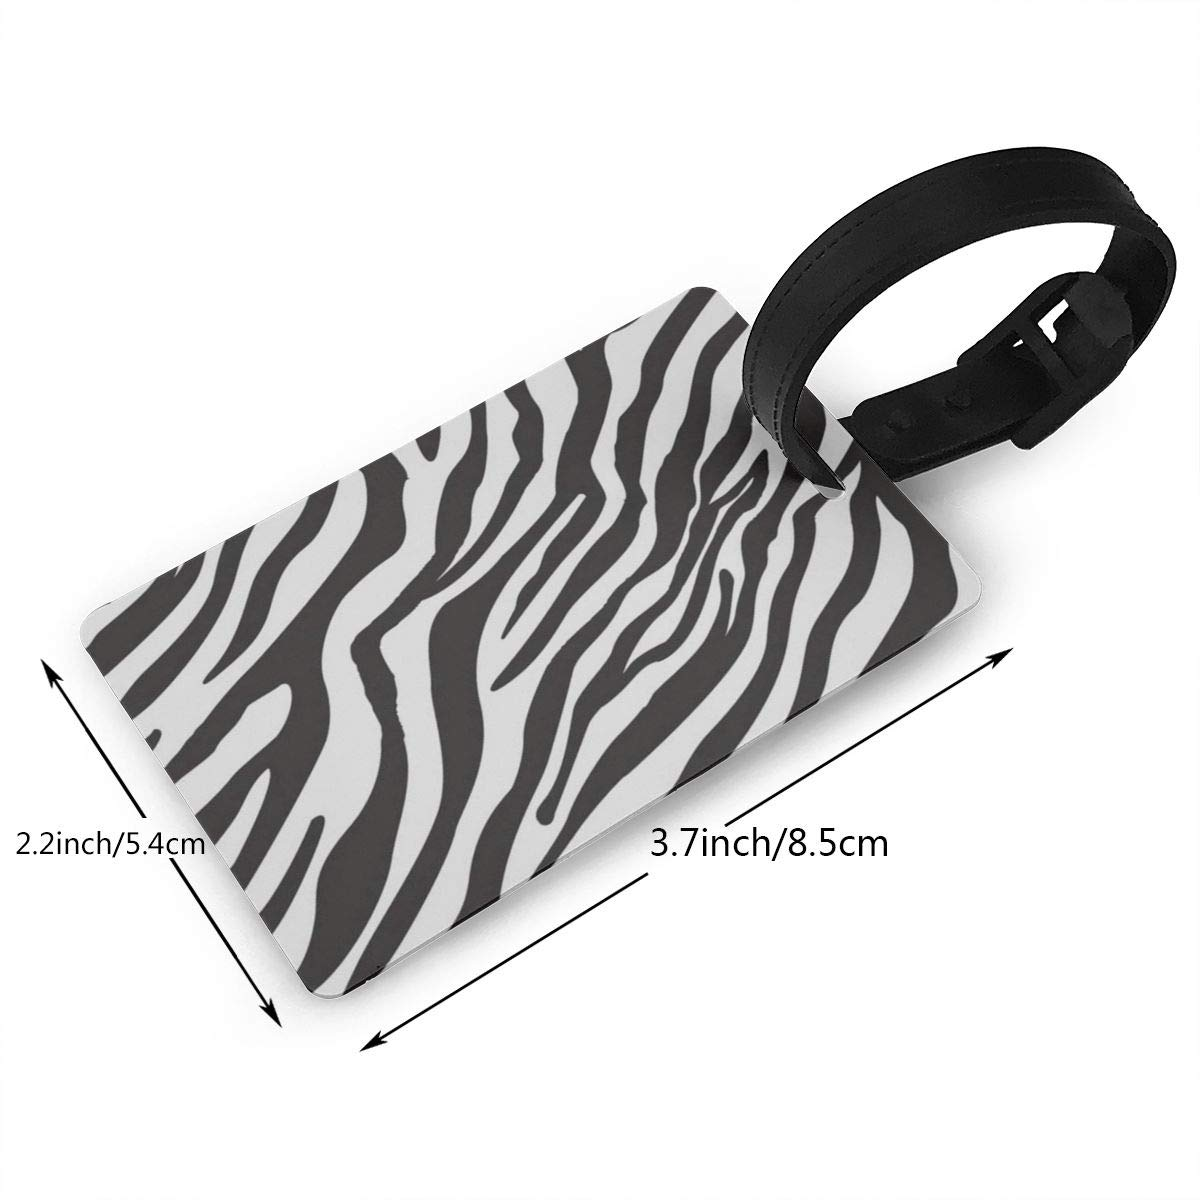 Luggage Tags Black And White Watercolor Tiger Head Bag Tag for Travel 2 PCS